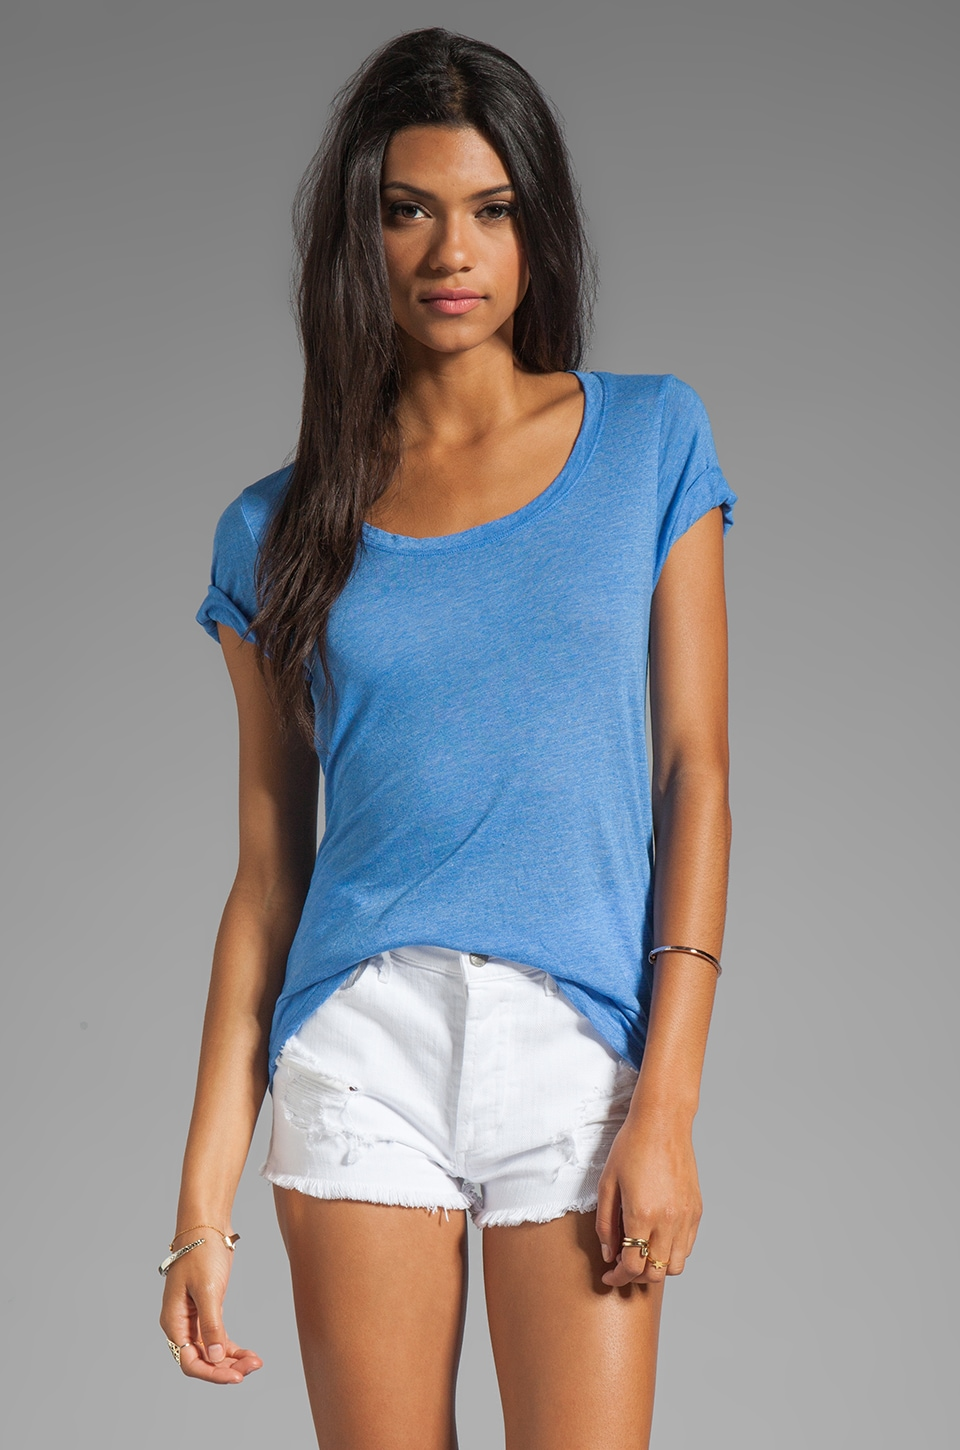 MONROW Tissue Basic Over-Sized Tee in Ocean